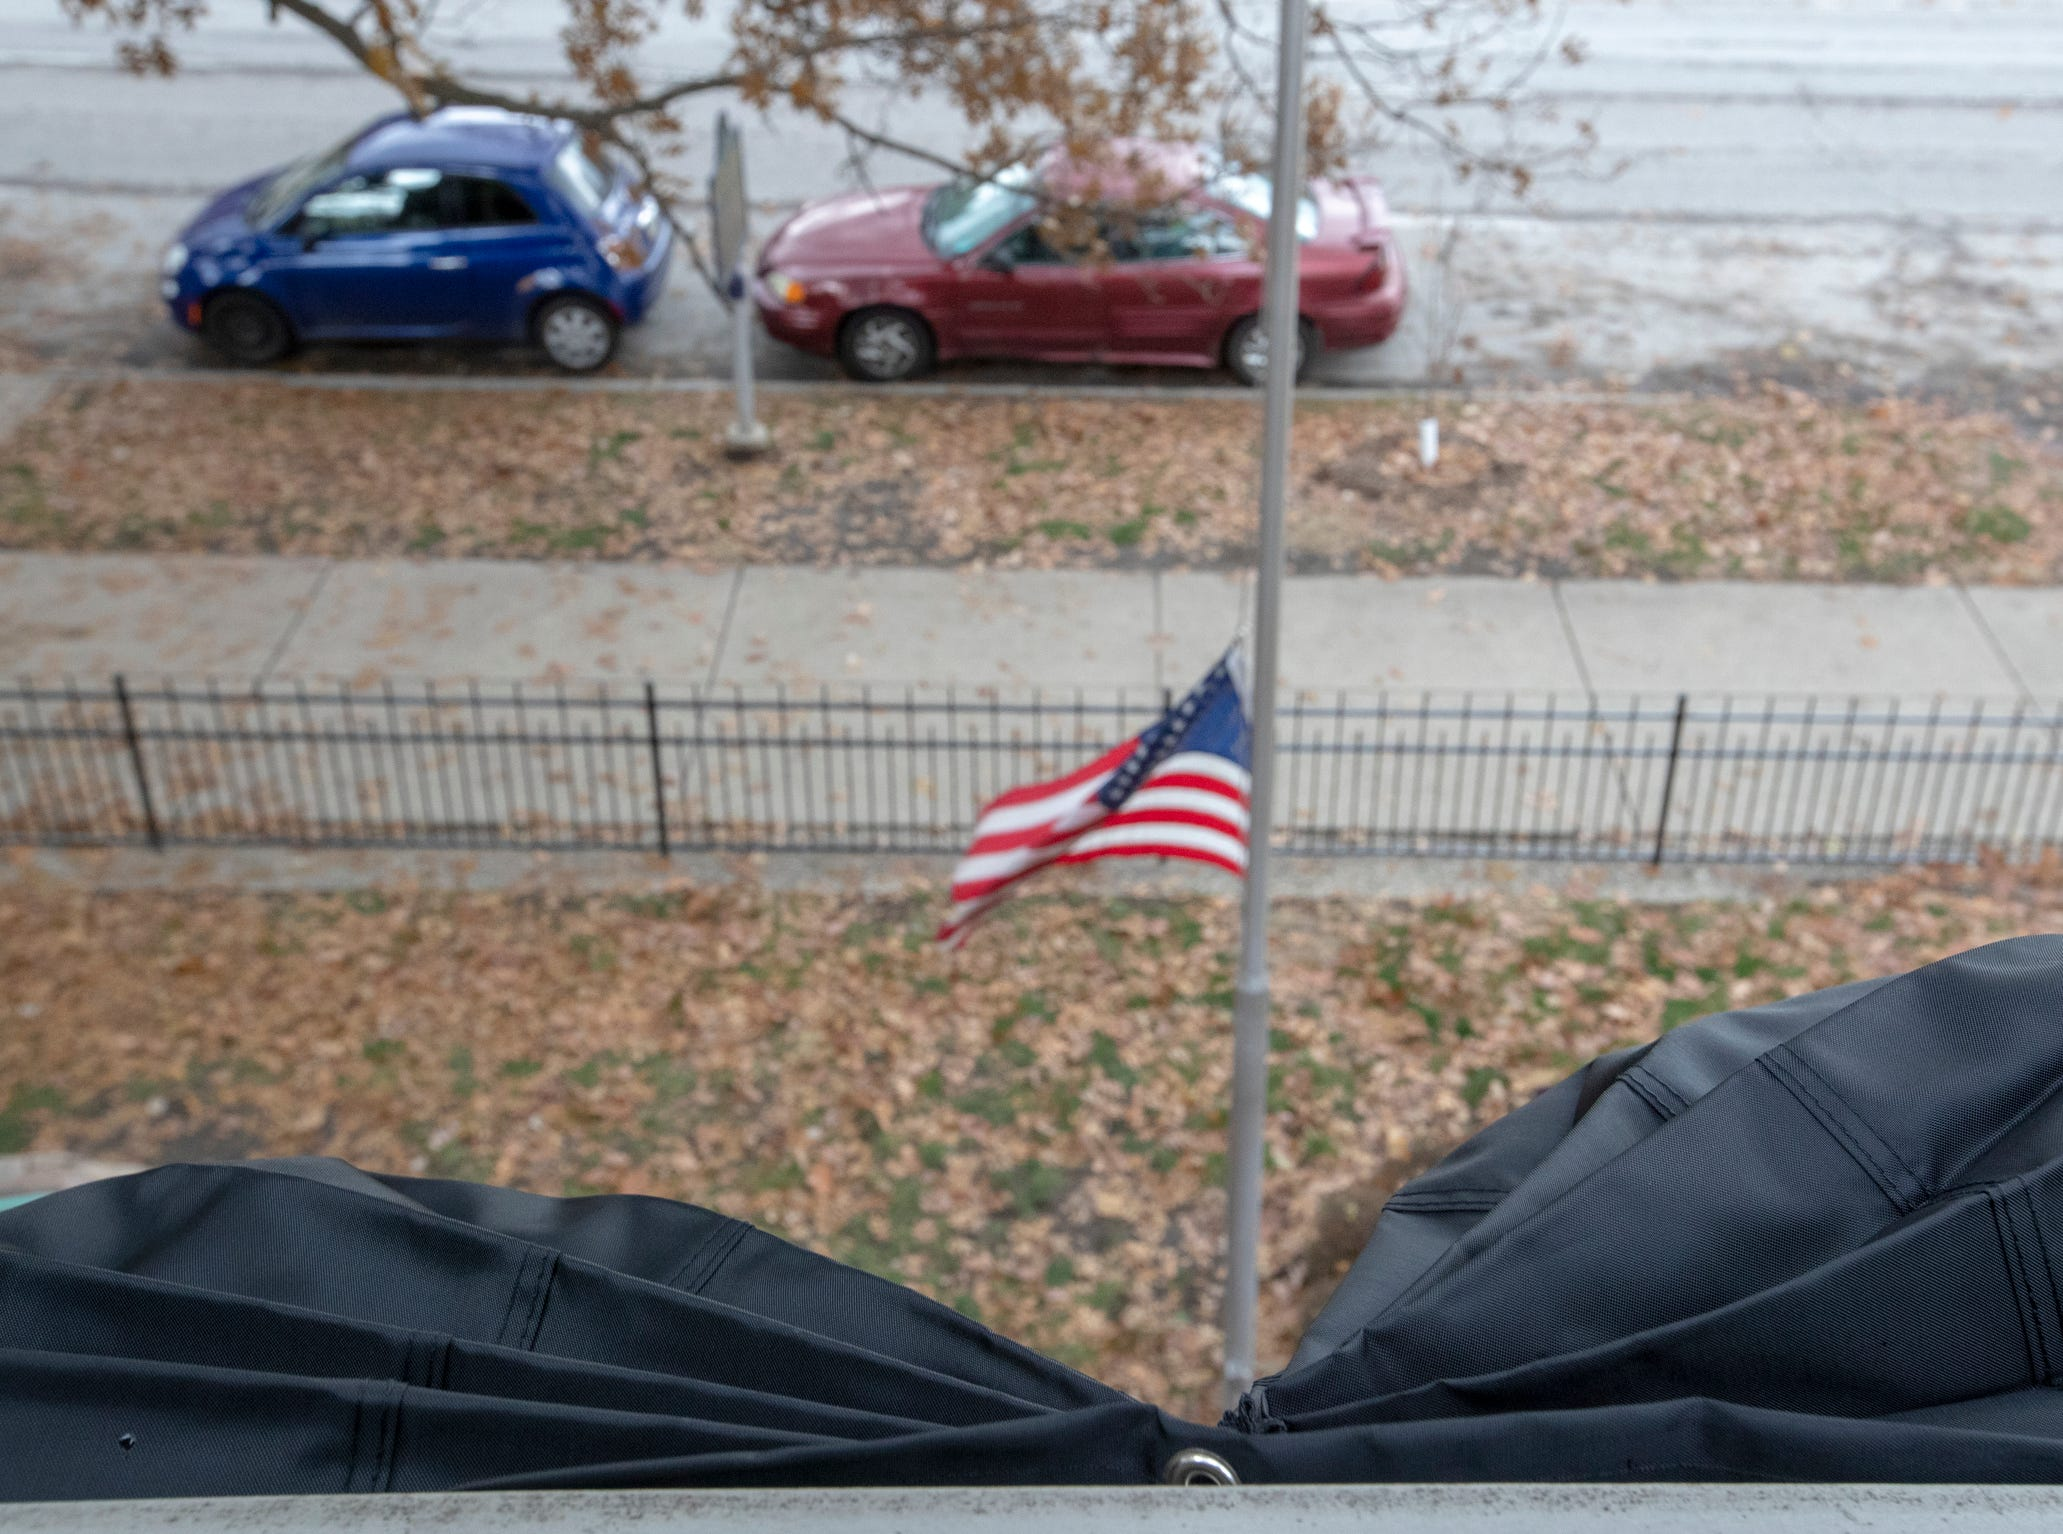 Mourning bunting and a flag at half mast at the Benjamin Harrison Presidential Site, Indianapolis, Sunday, Dec. 2, 2018. This display on the railings, and a half-mast flag, pay respects to George H. W. Bush, the 41st President, who died on Friday evening in Houston.